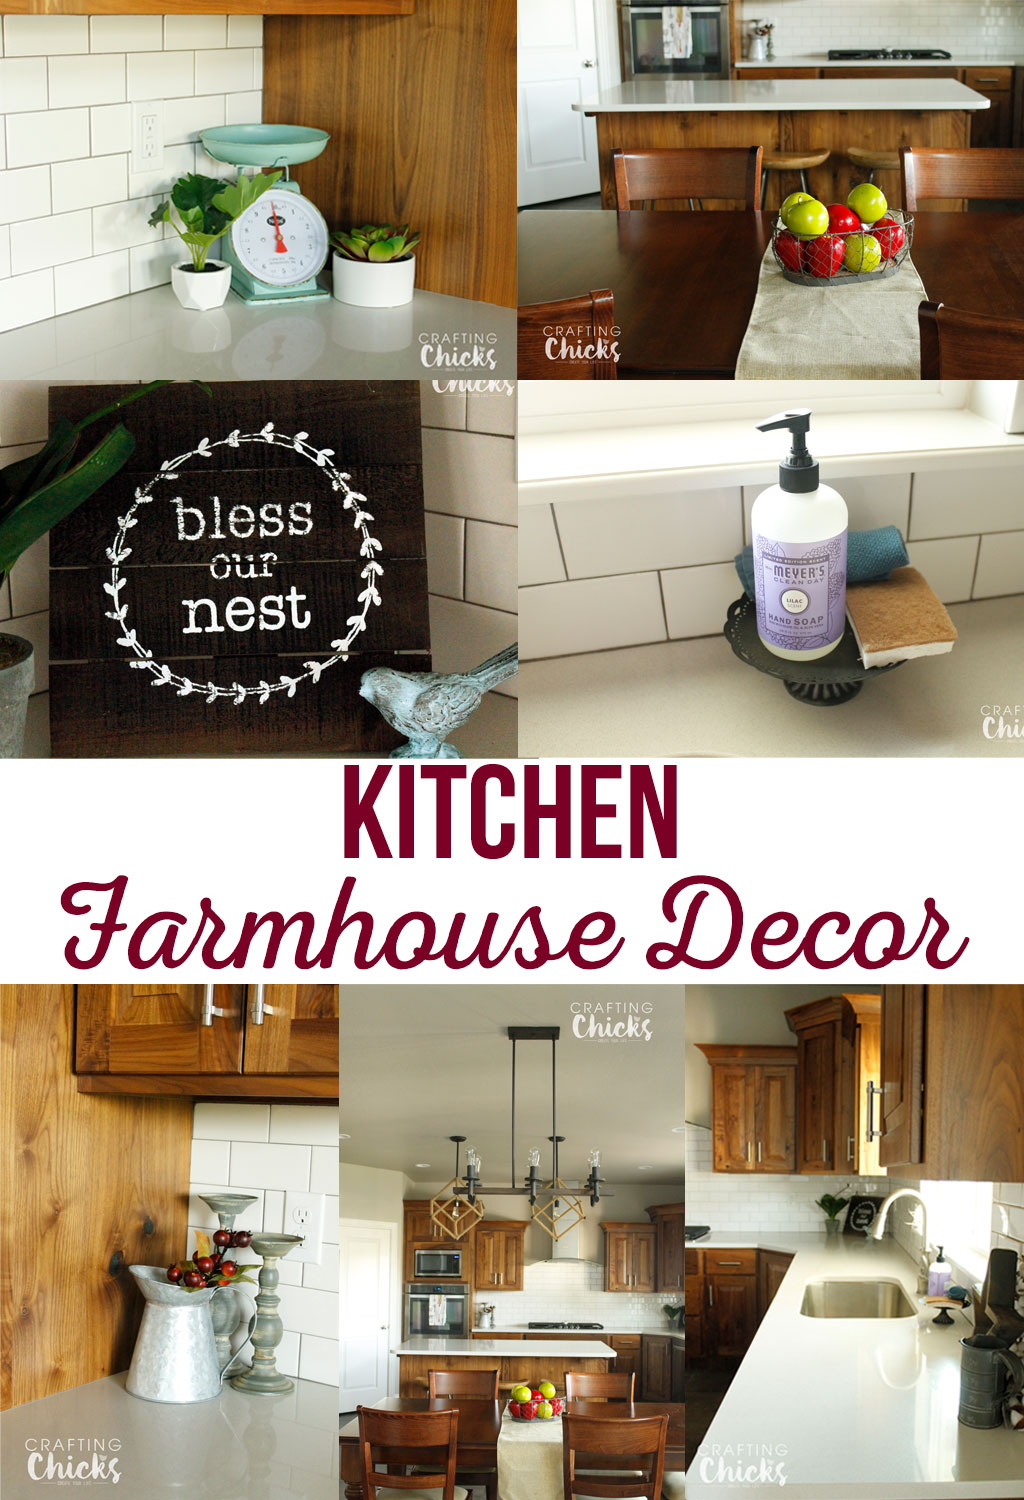 Kitchen Farmhouse Decor